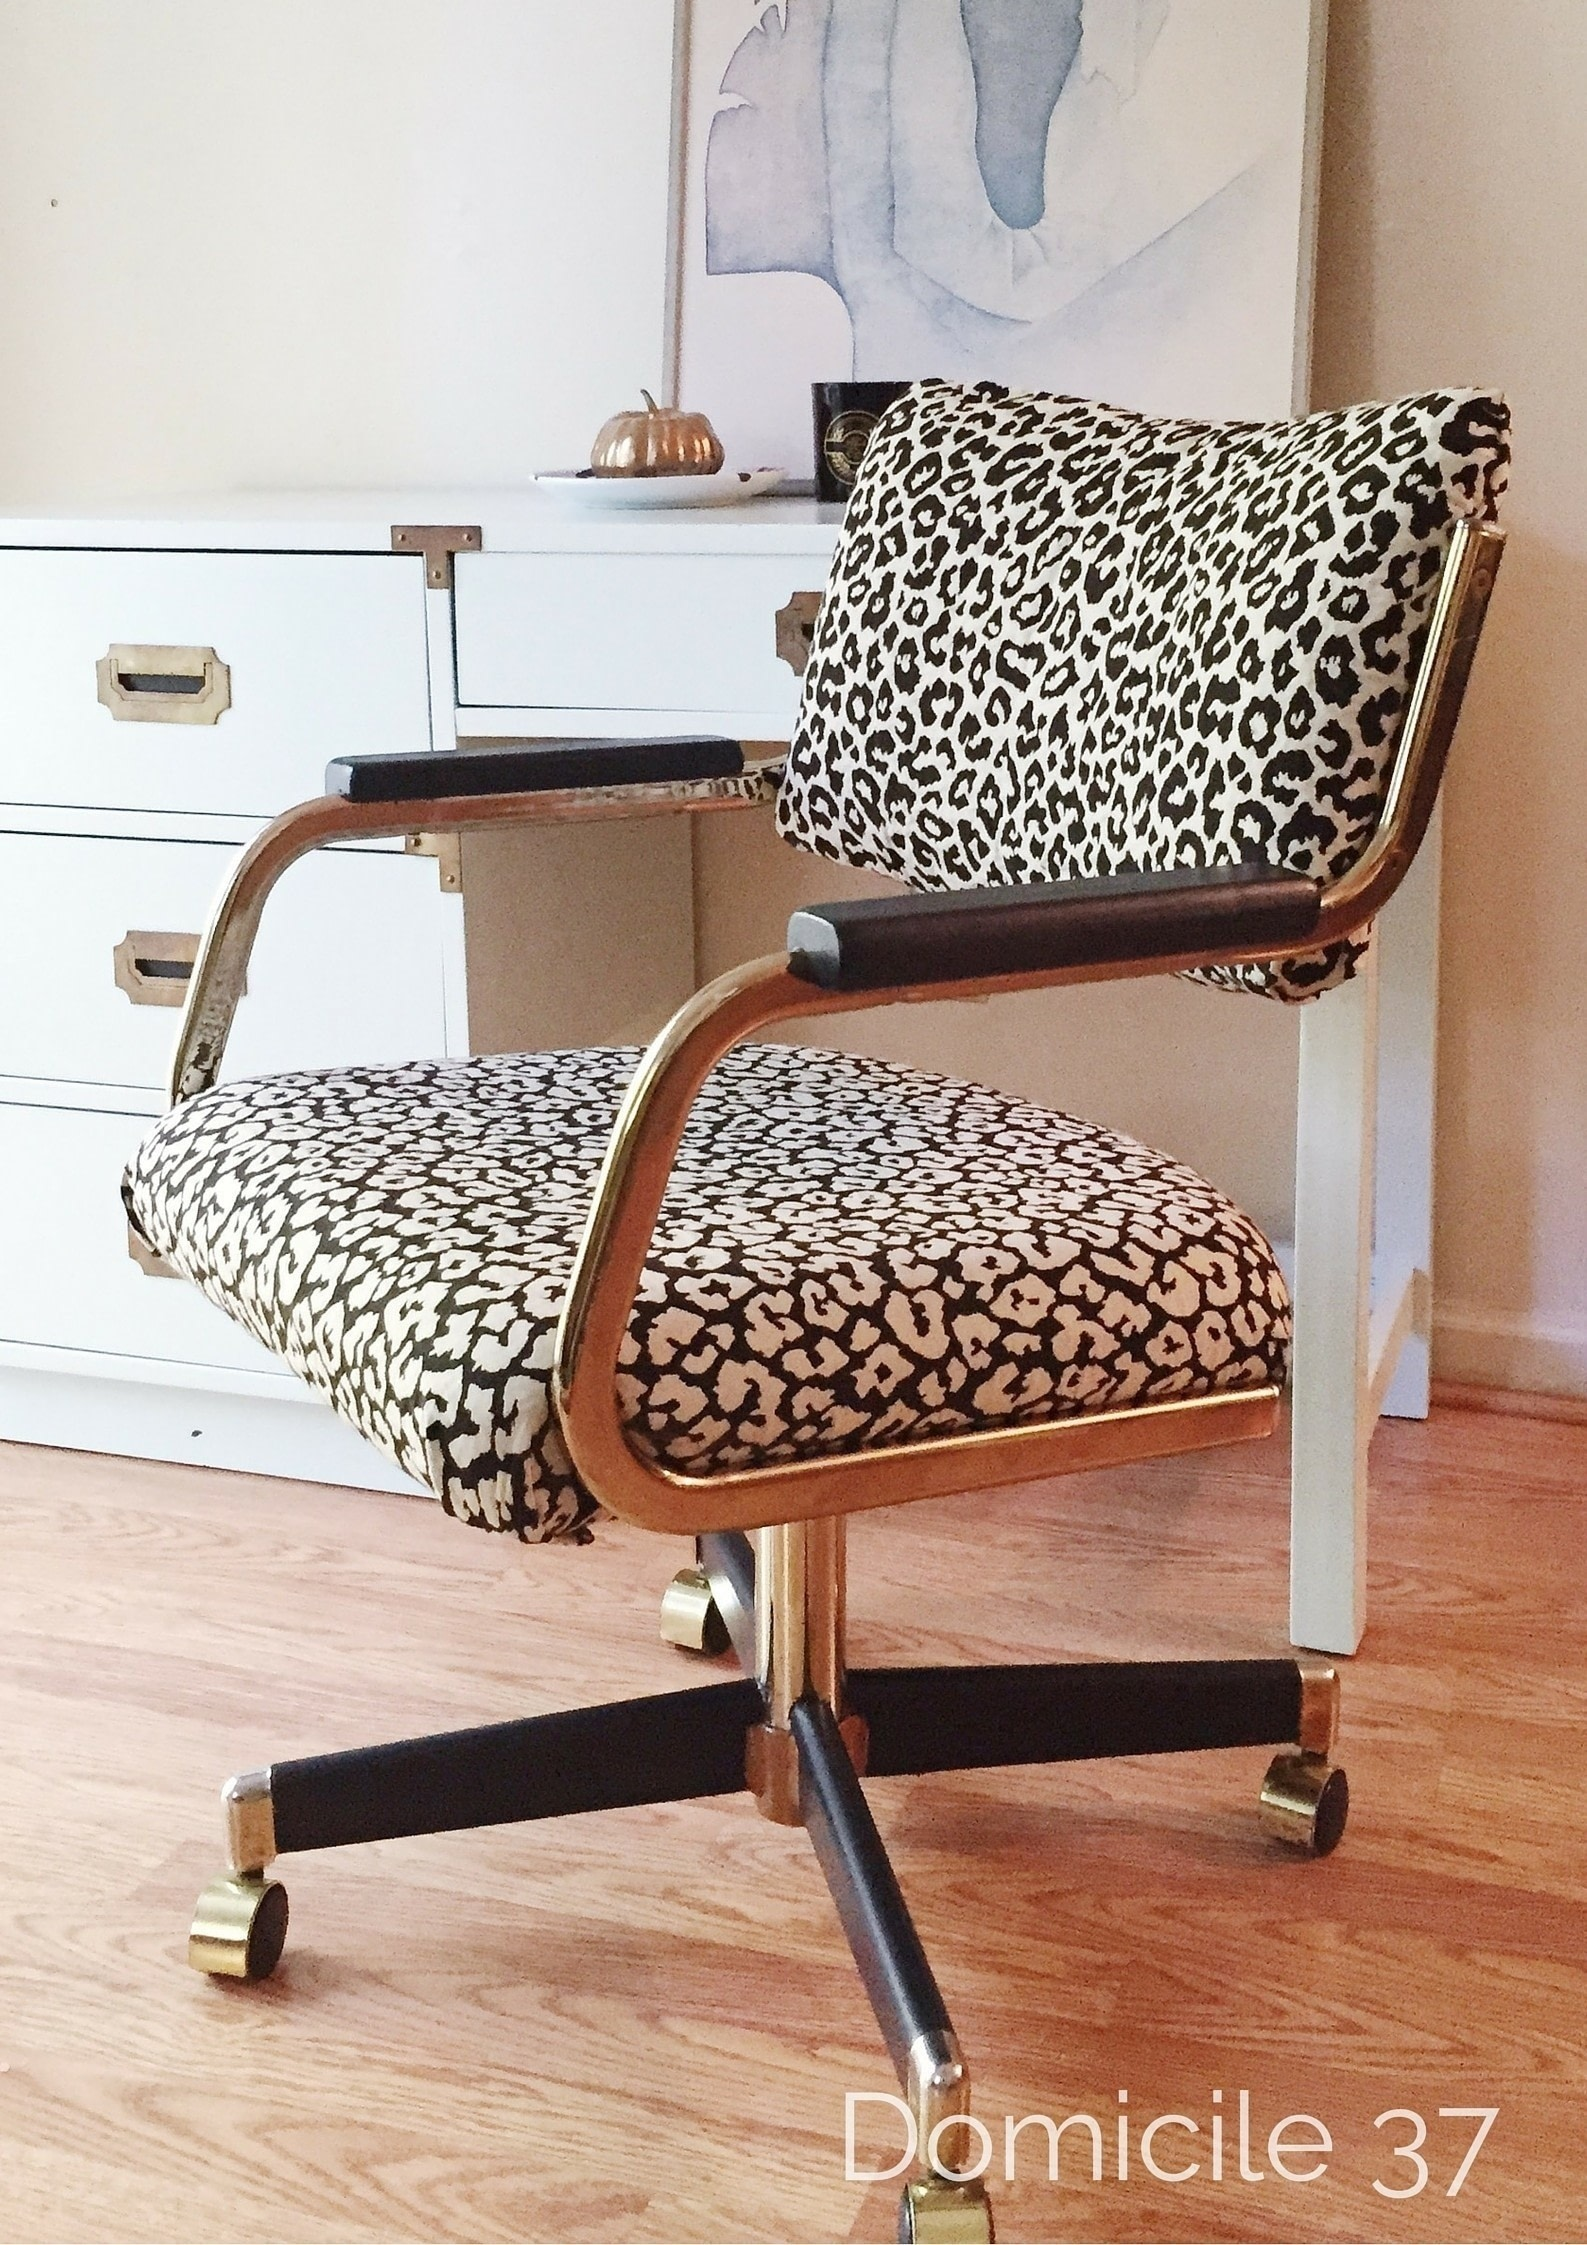 How To Reupholster A Cantilever Chair · How To Make A Chair · Home